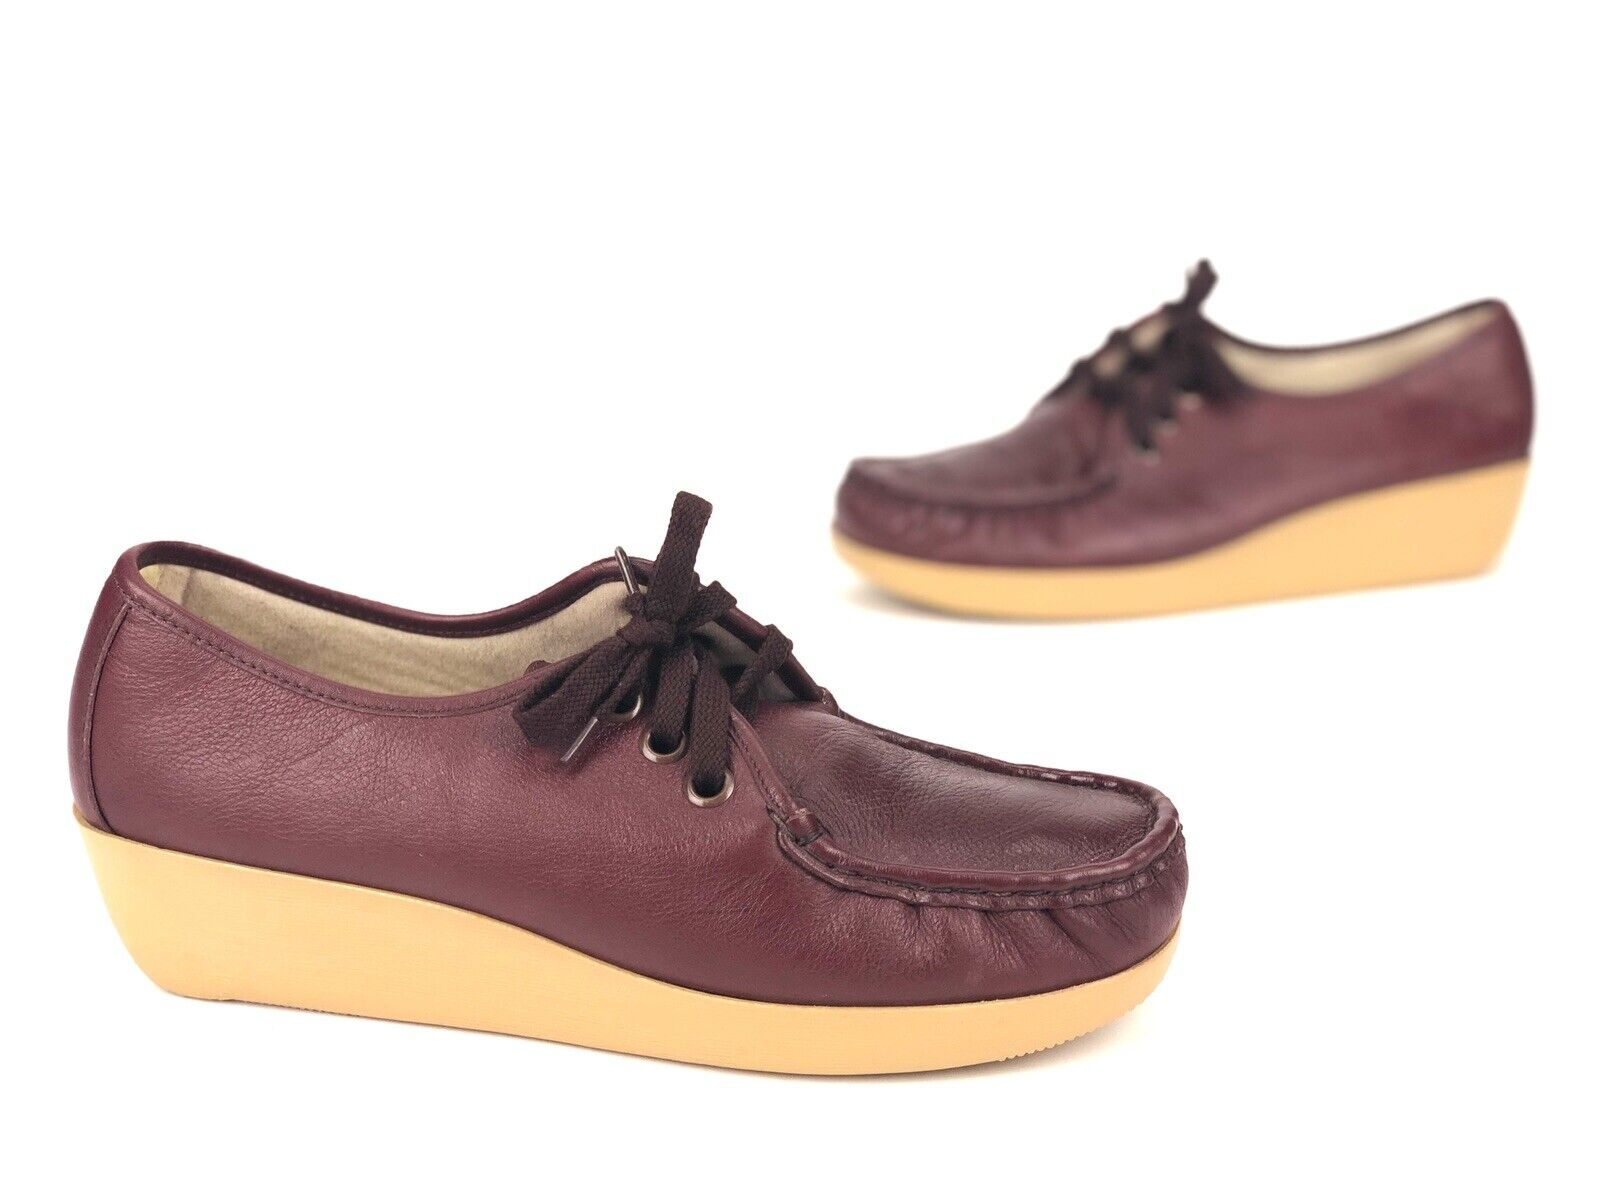 Sears Career Comfort Womens Oxfords Sz. 11 D Handsewn Moc Toe Lace-Up shoes